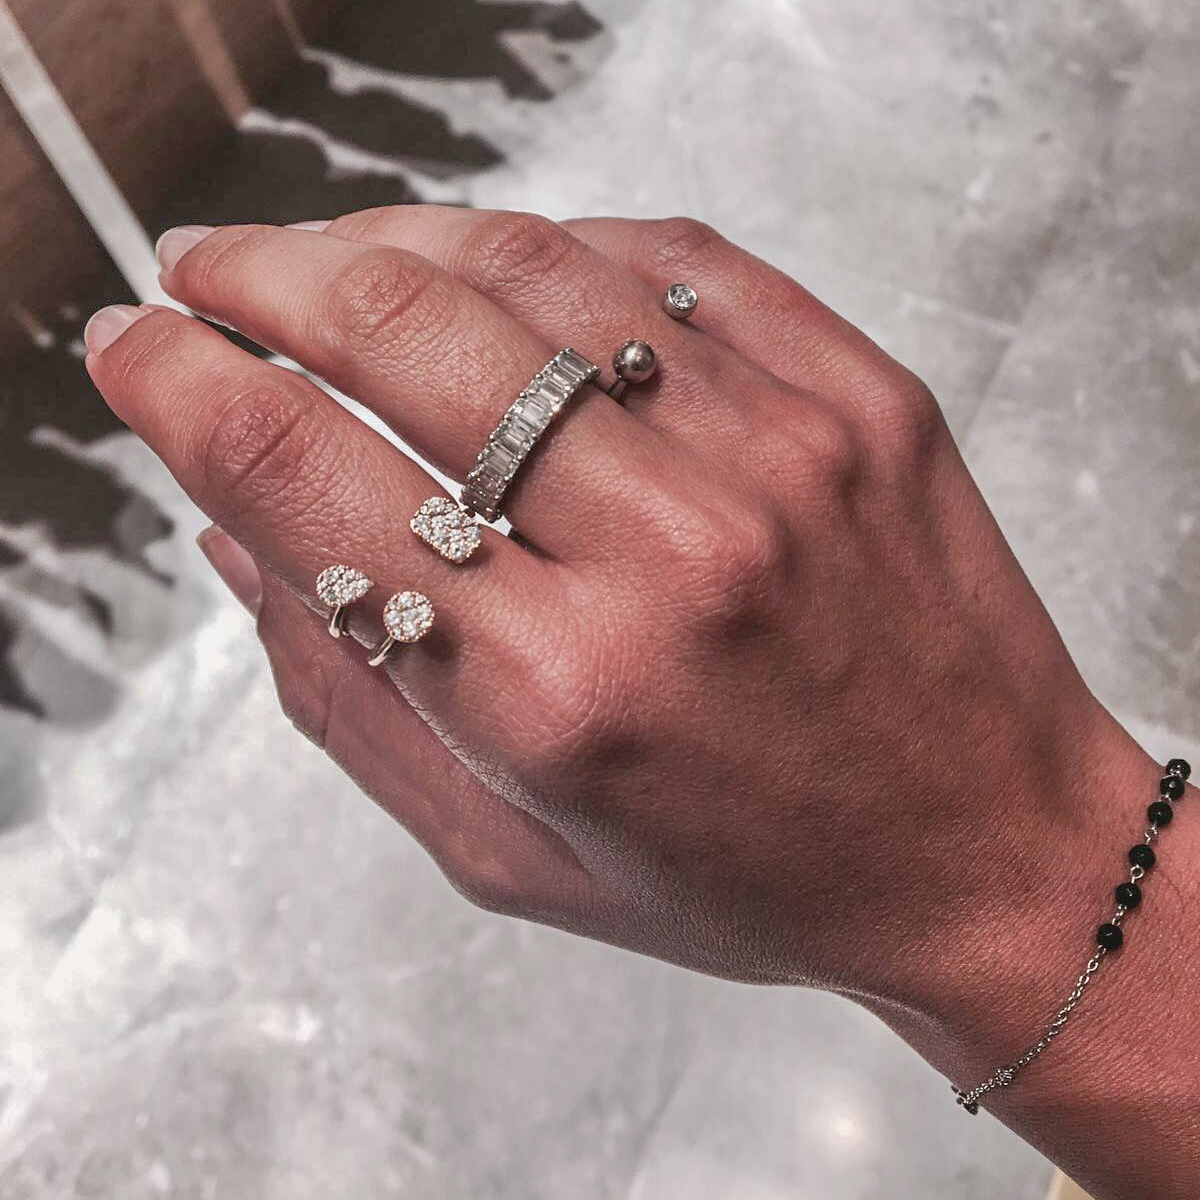 Danielle's Armor: Rings from her Molecule Collection